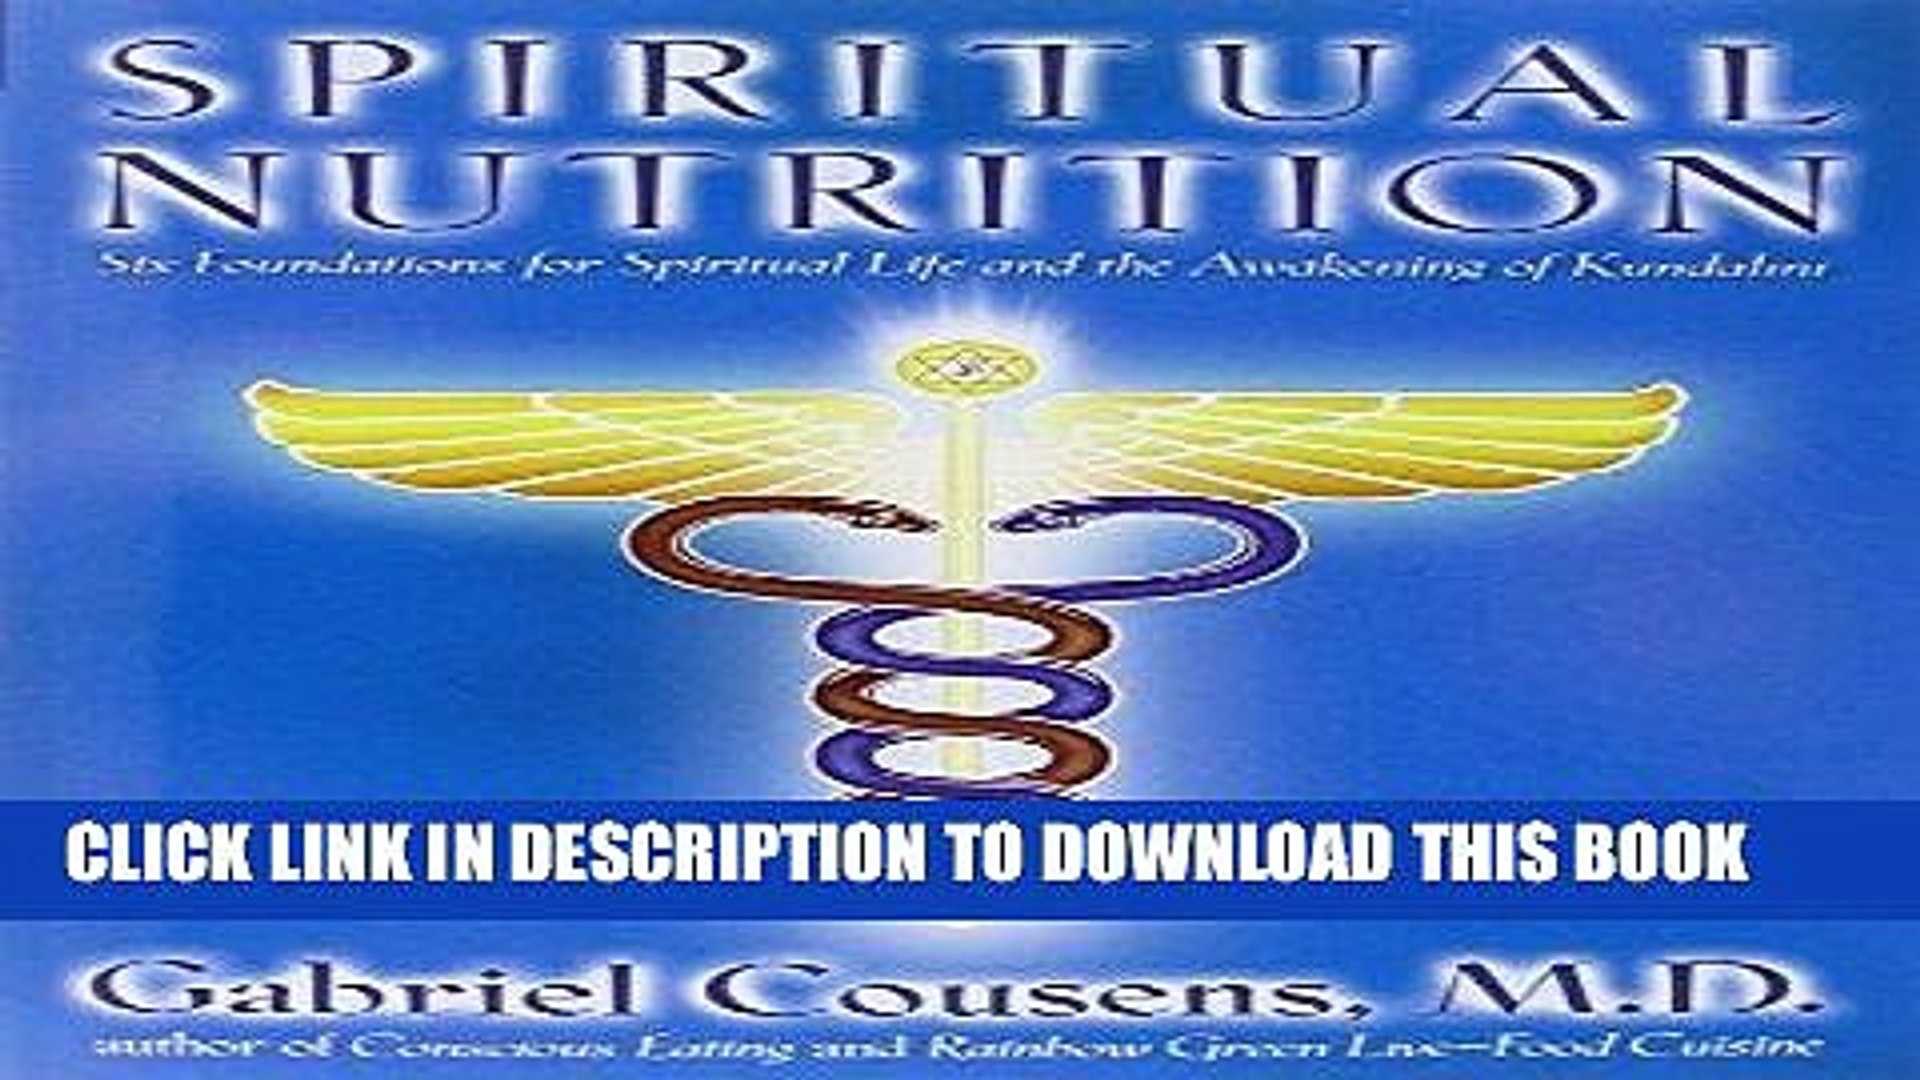 Best Seller Spiritual Nutrition: Six Foundations for Spiritual Life and the Awakening of Kundalini